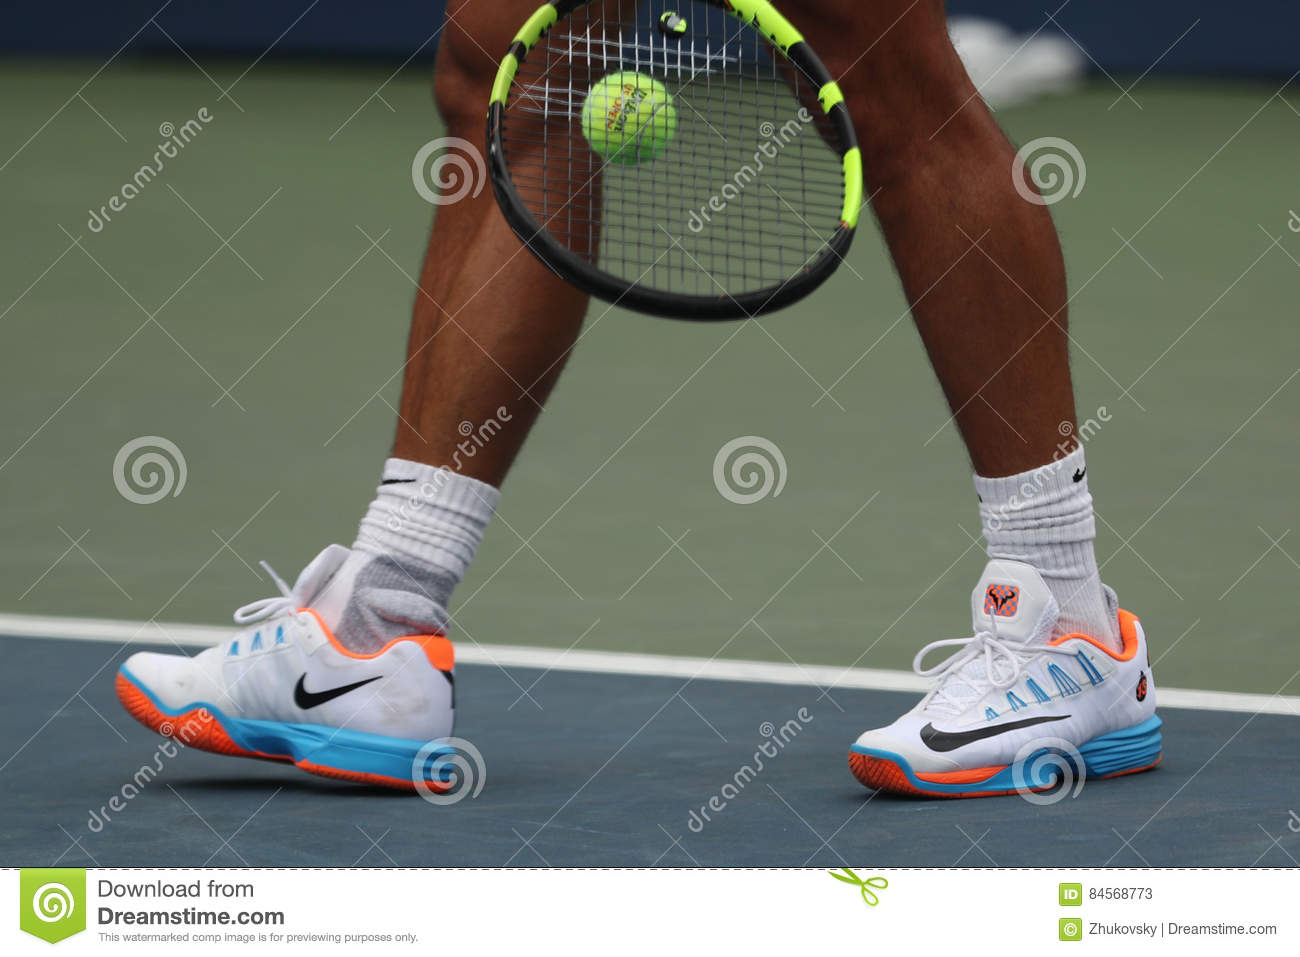 size 40 a0bd4 10bdf Grand Slam champion Rafael Nadal of Spain wears custom Nike tennis shoes  during practice for US